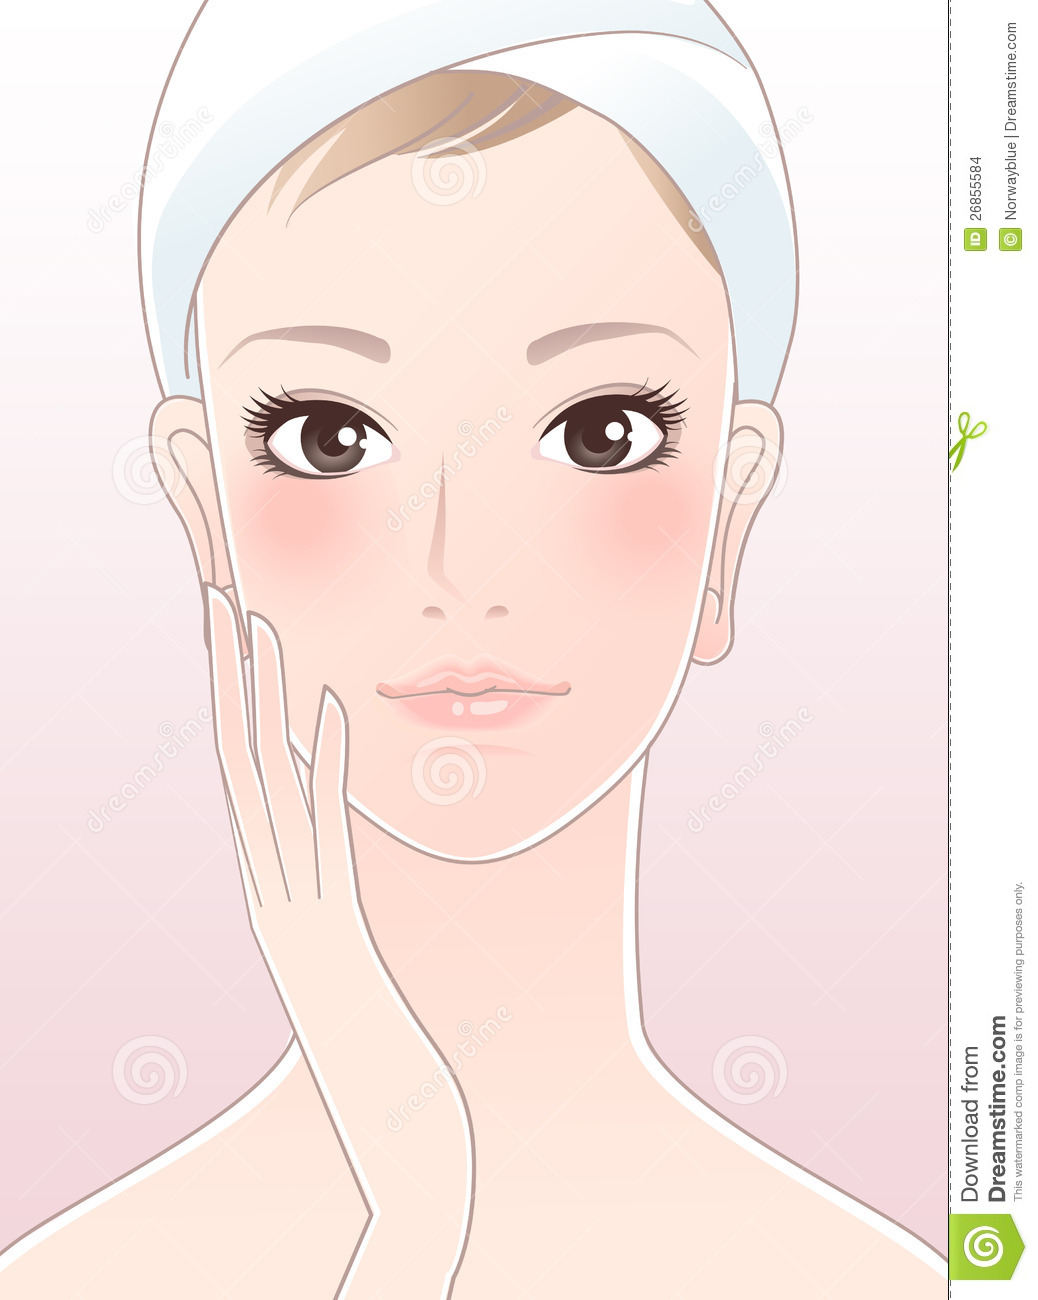 how to get healthy looking face